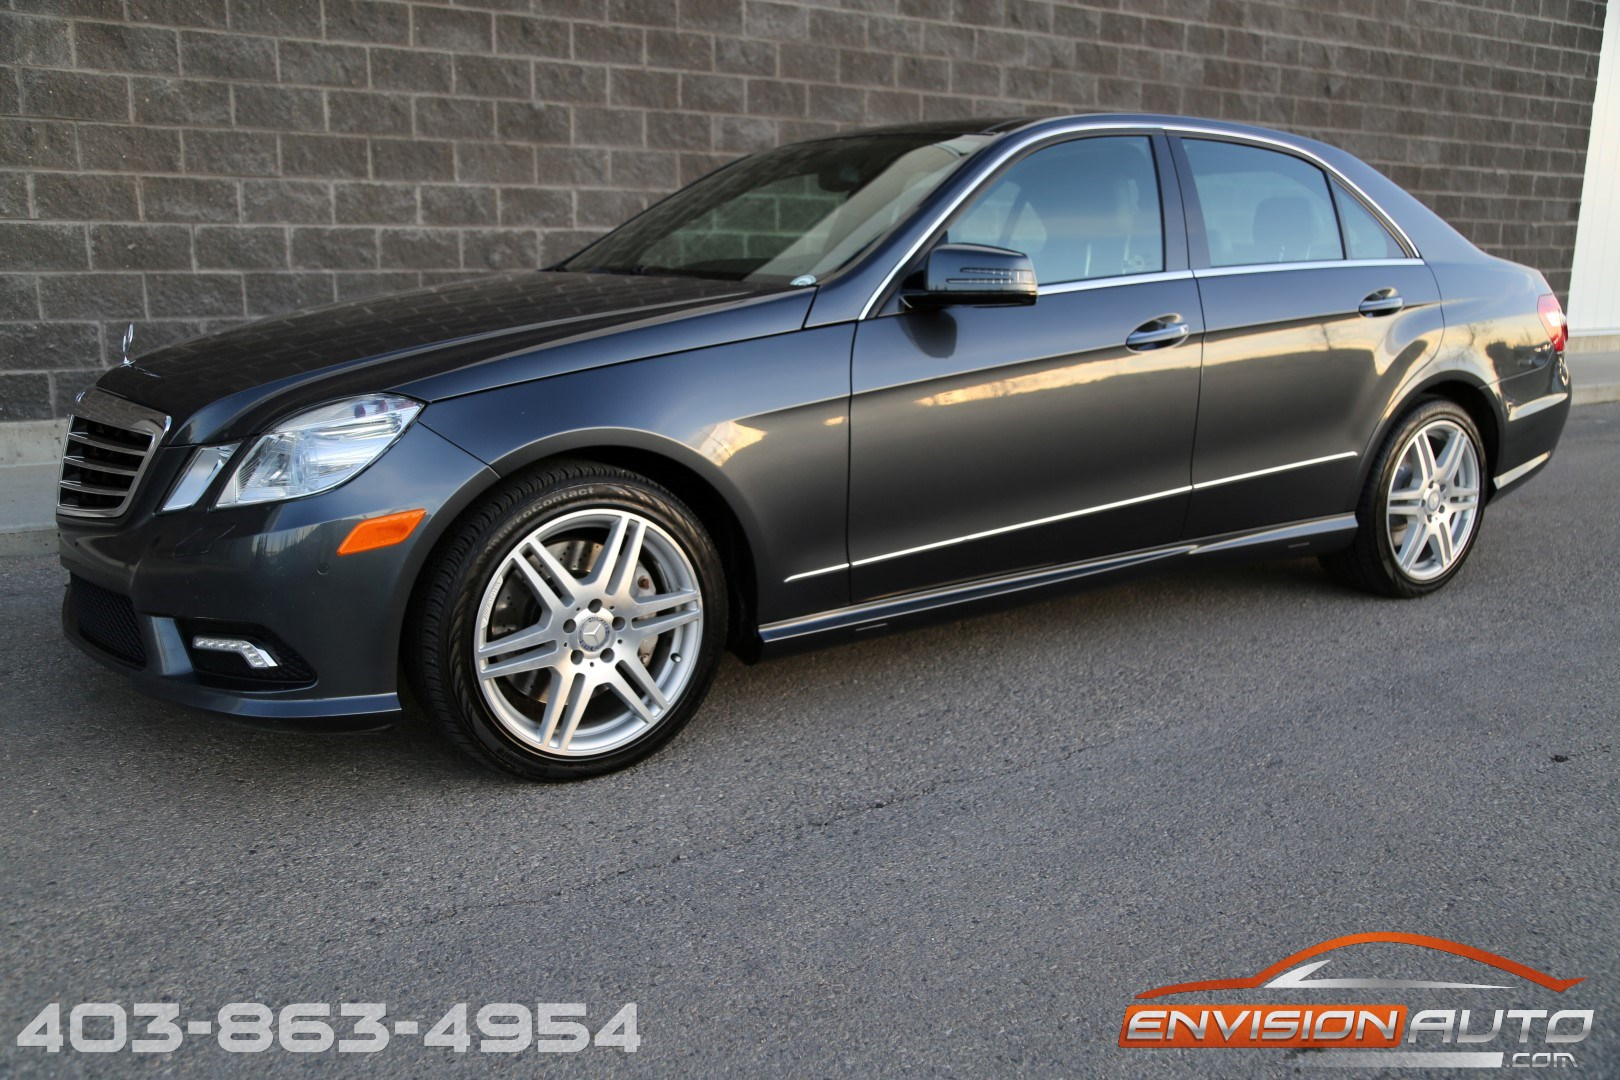 2010 mercedes benz e550 4matic spotless history envision for Mercedes benz e550 4matic